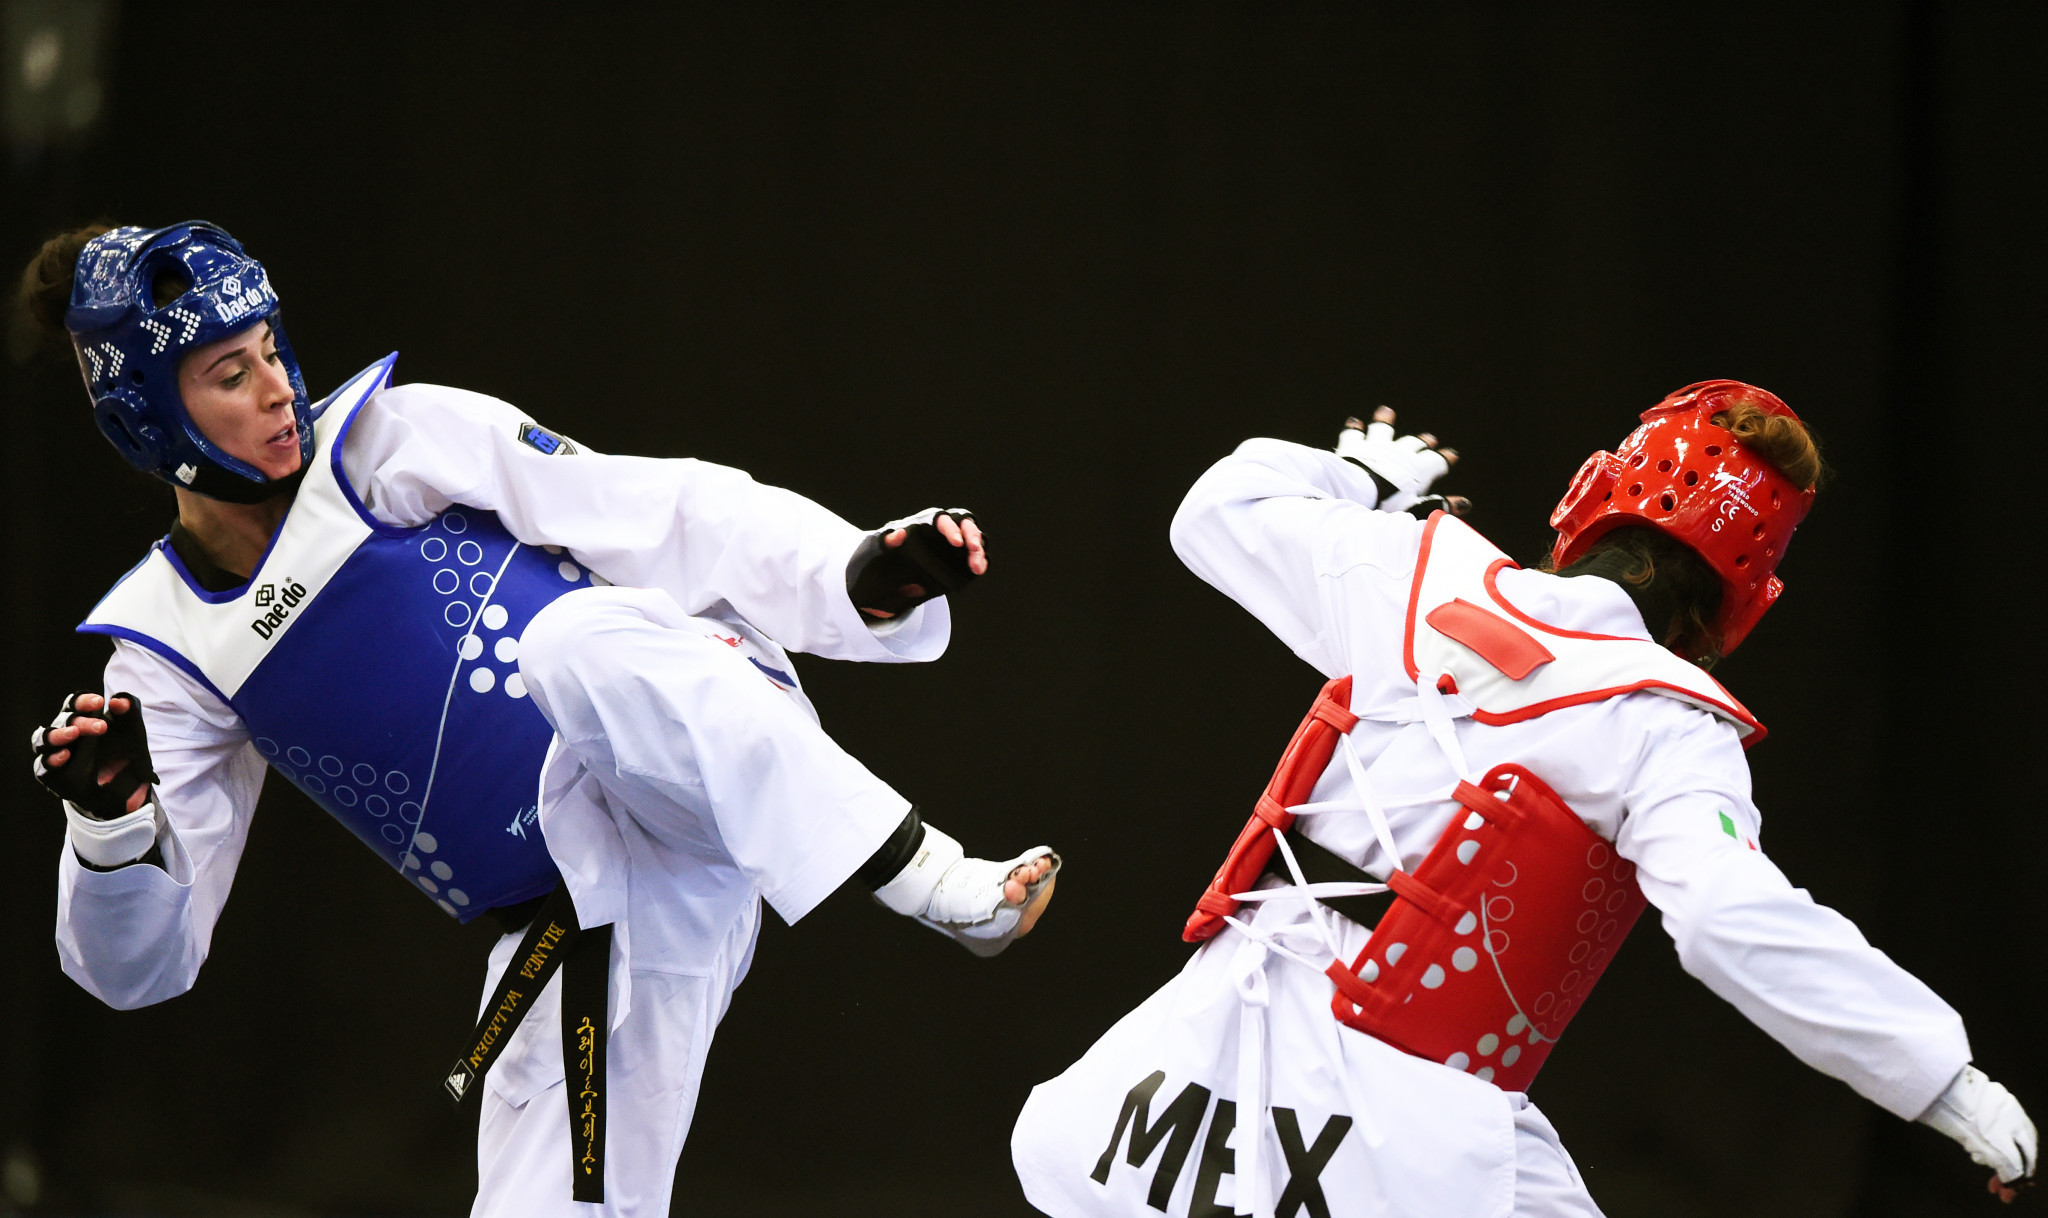 Bianca Walkden is among the leading fighters named on Great Britain's 15-strong team to compete at the World Taekwondo Championships in Manchester next month ©Getty Images